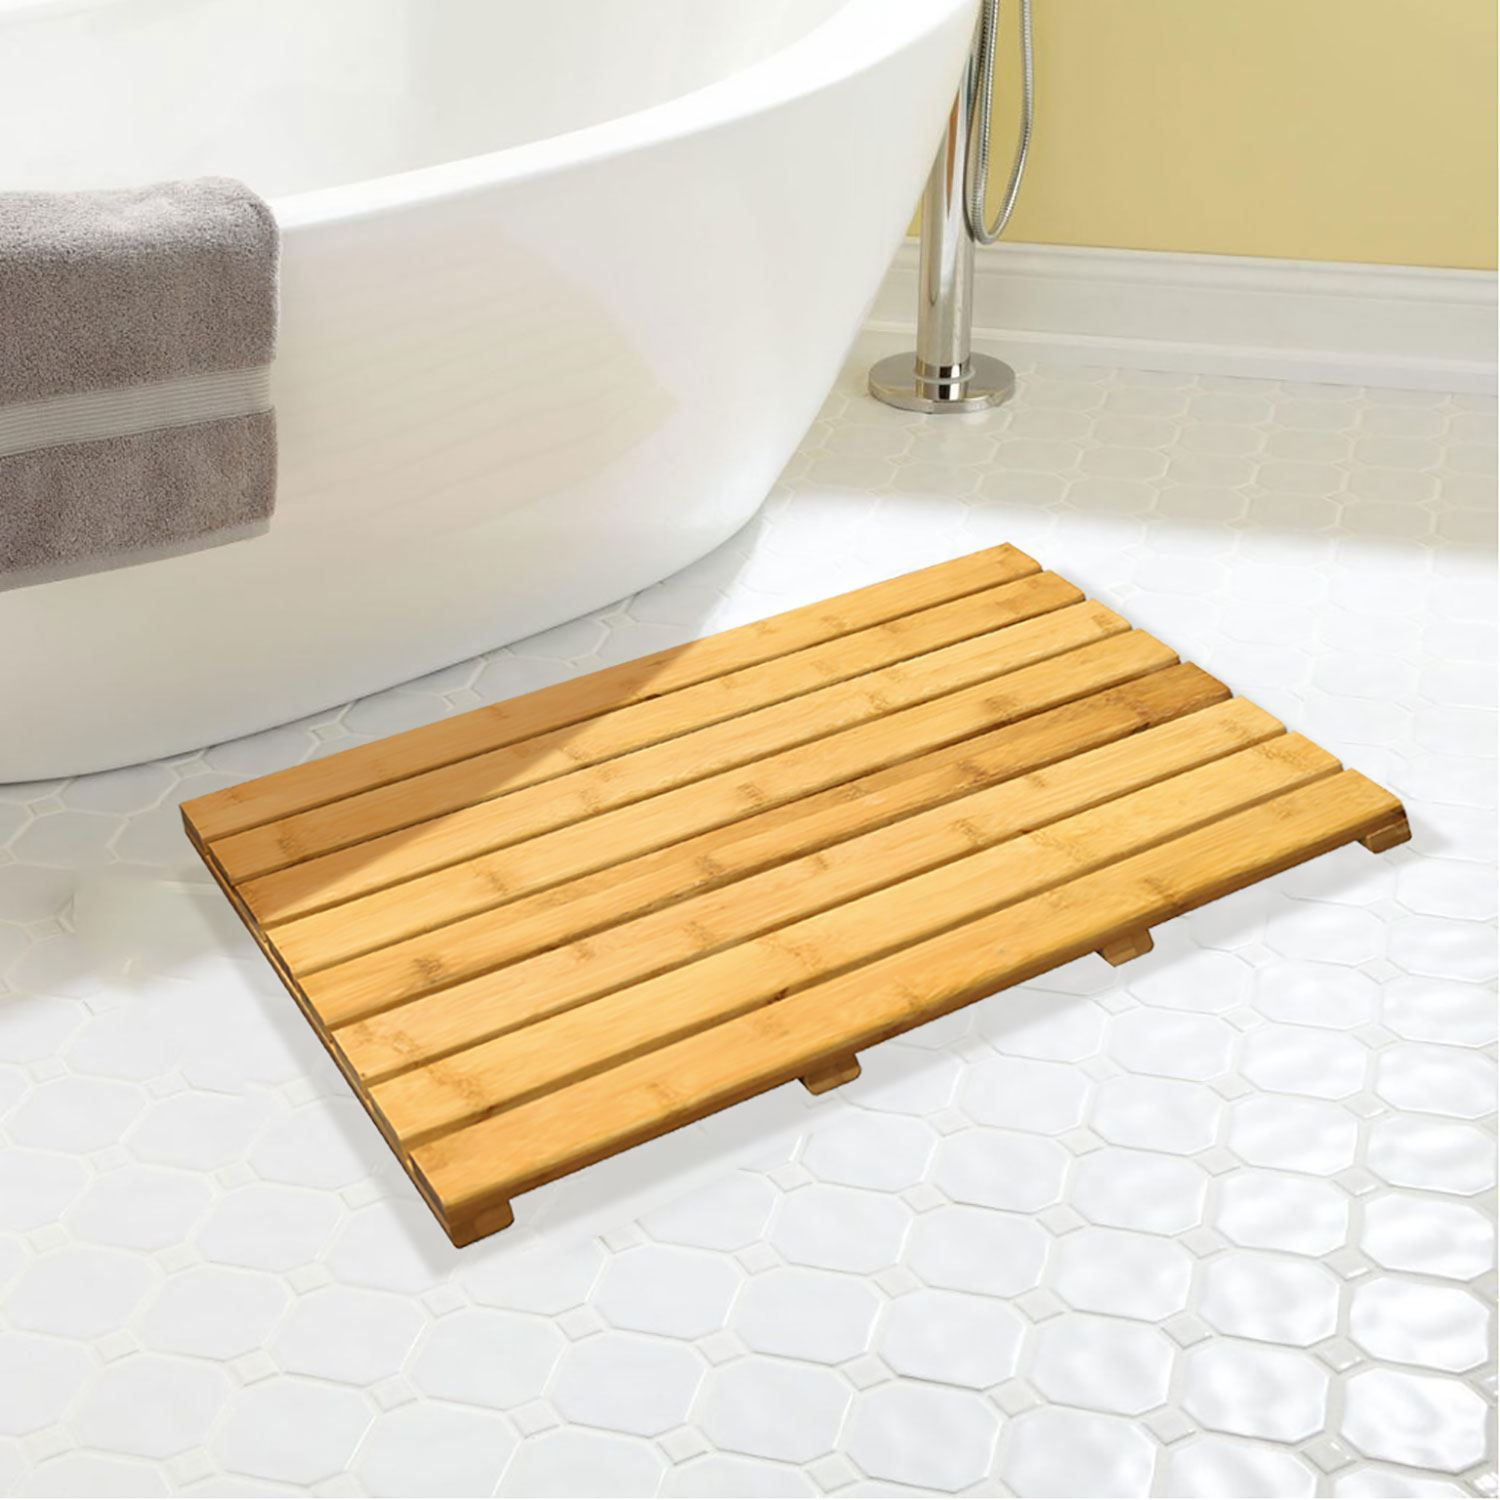 Non Slip Bamboo Wooden Slatted Rectangular Duck Board Bath Mat Shower Bathroom 5054667100868 Ebay